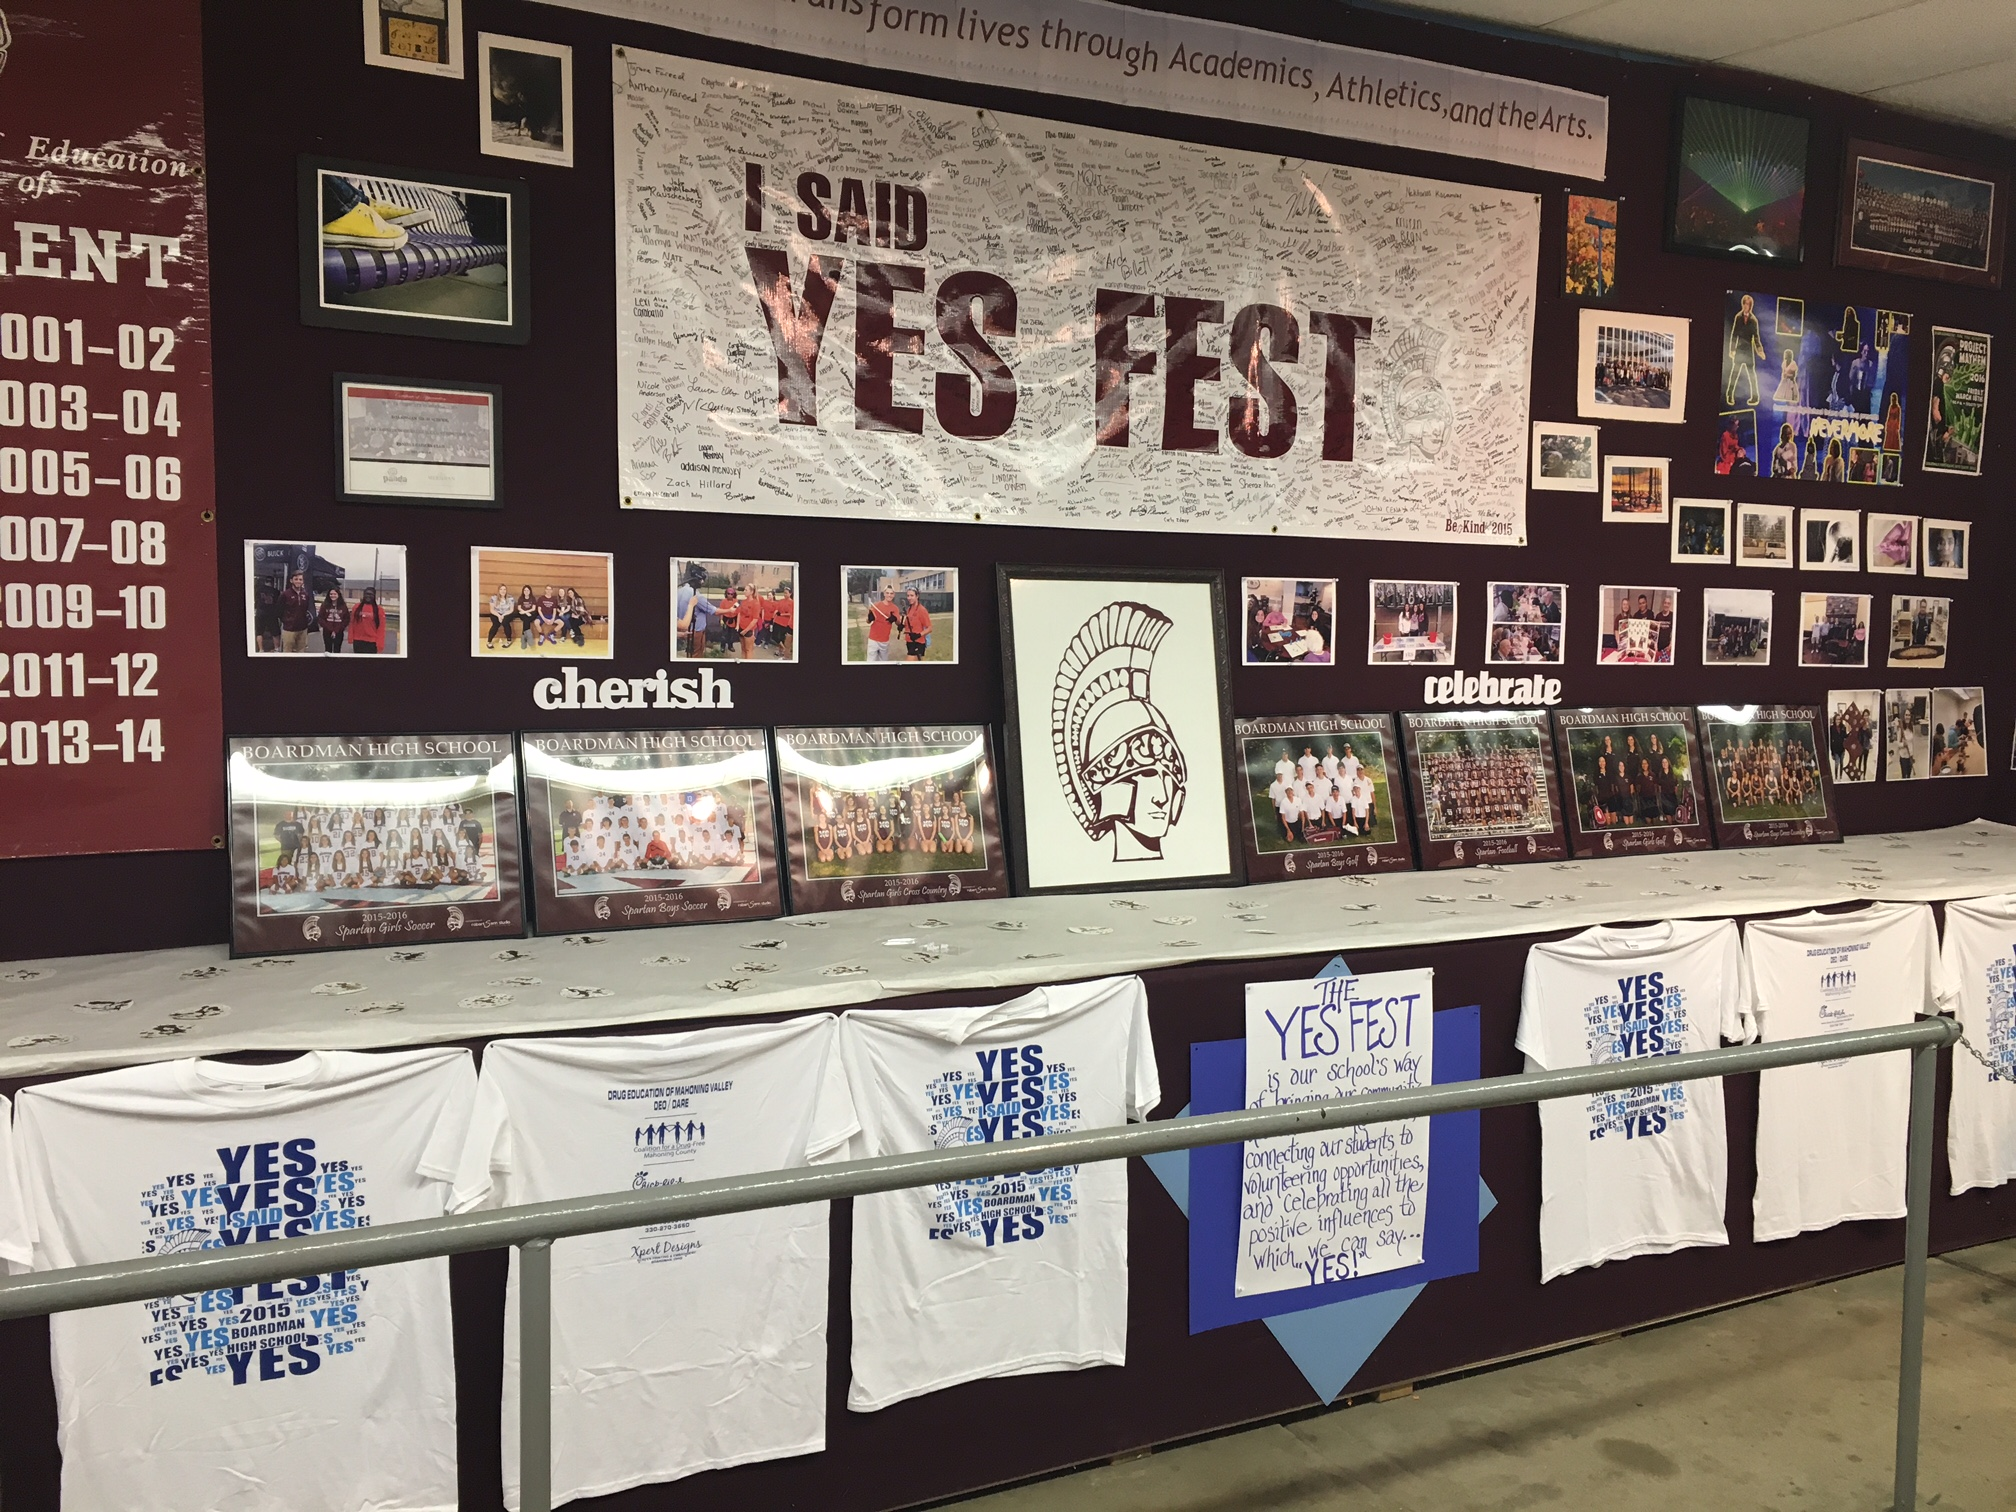 yes fest sign with students signatures